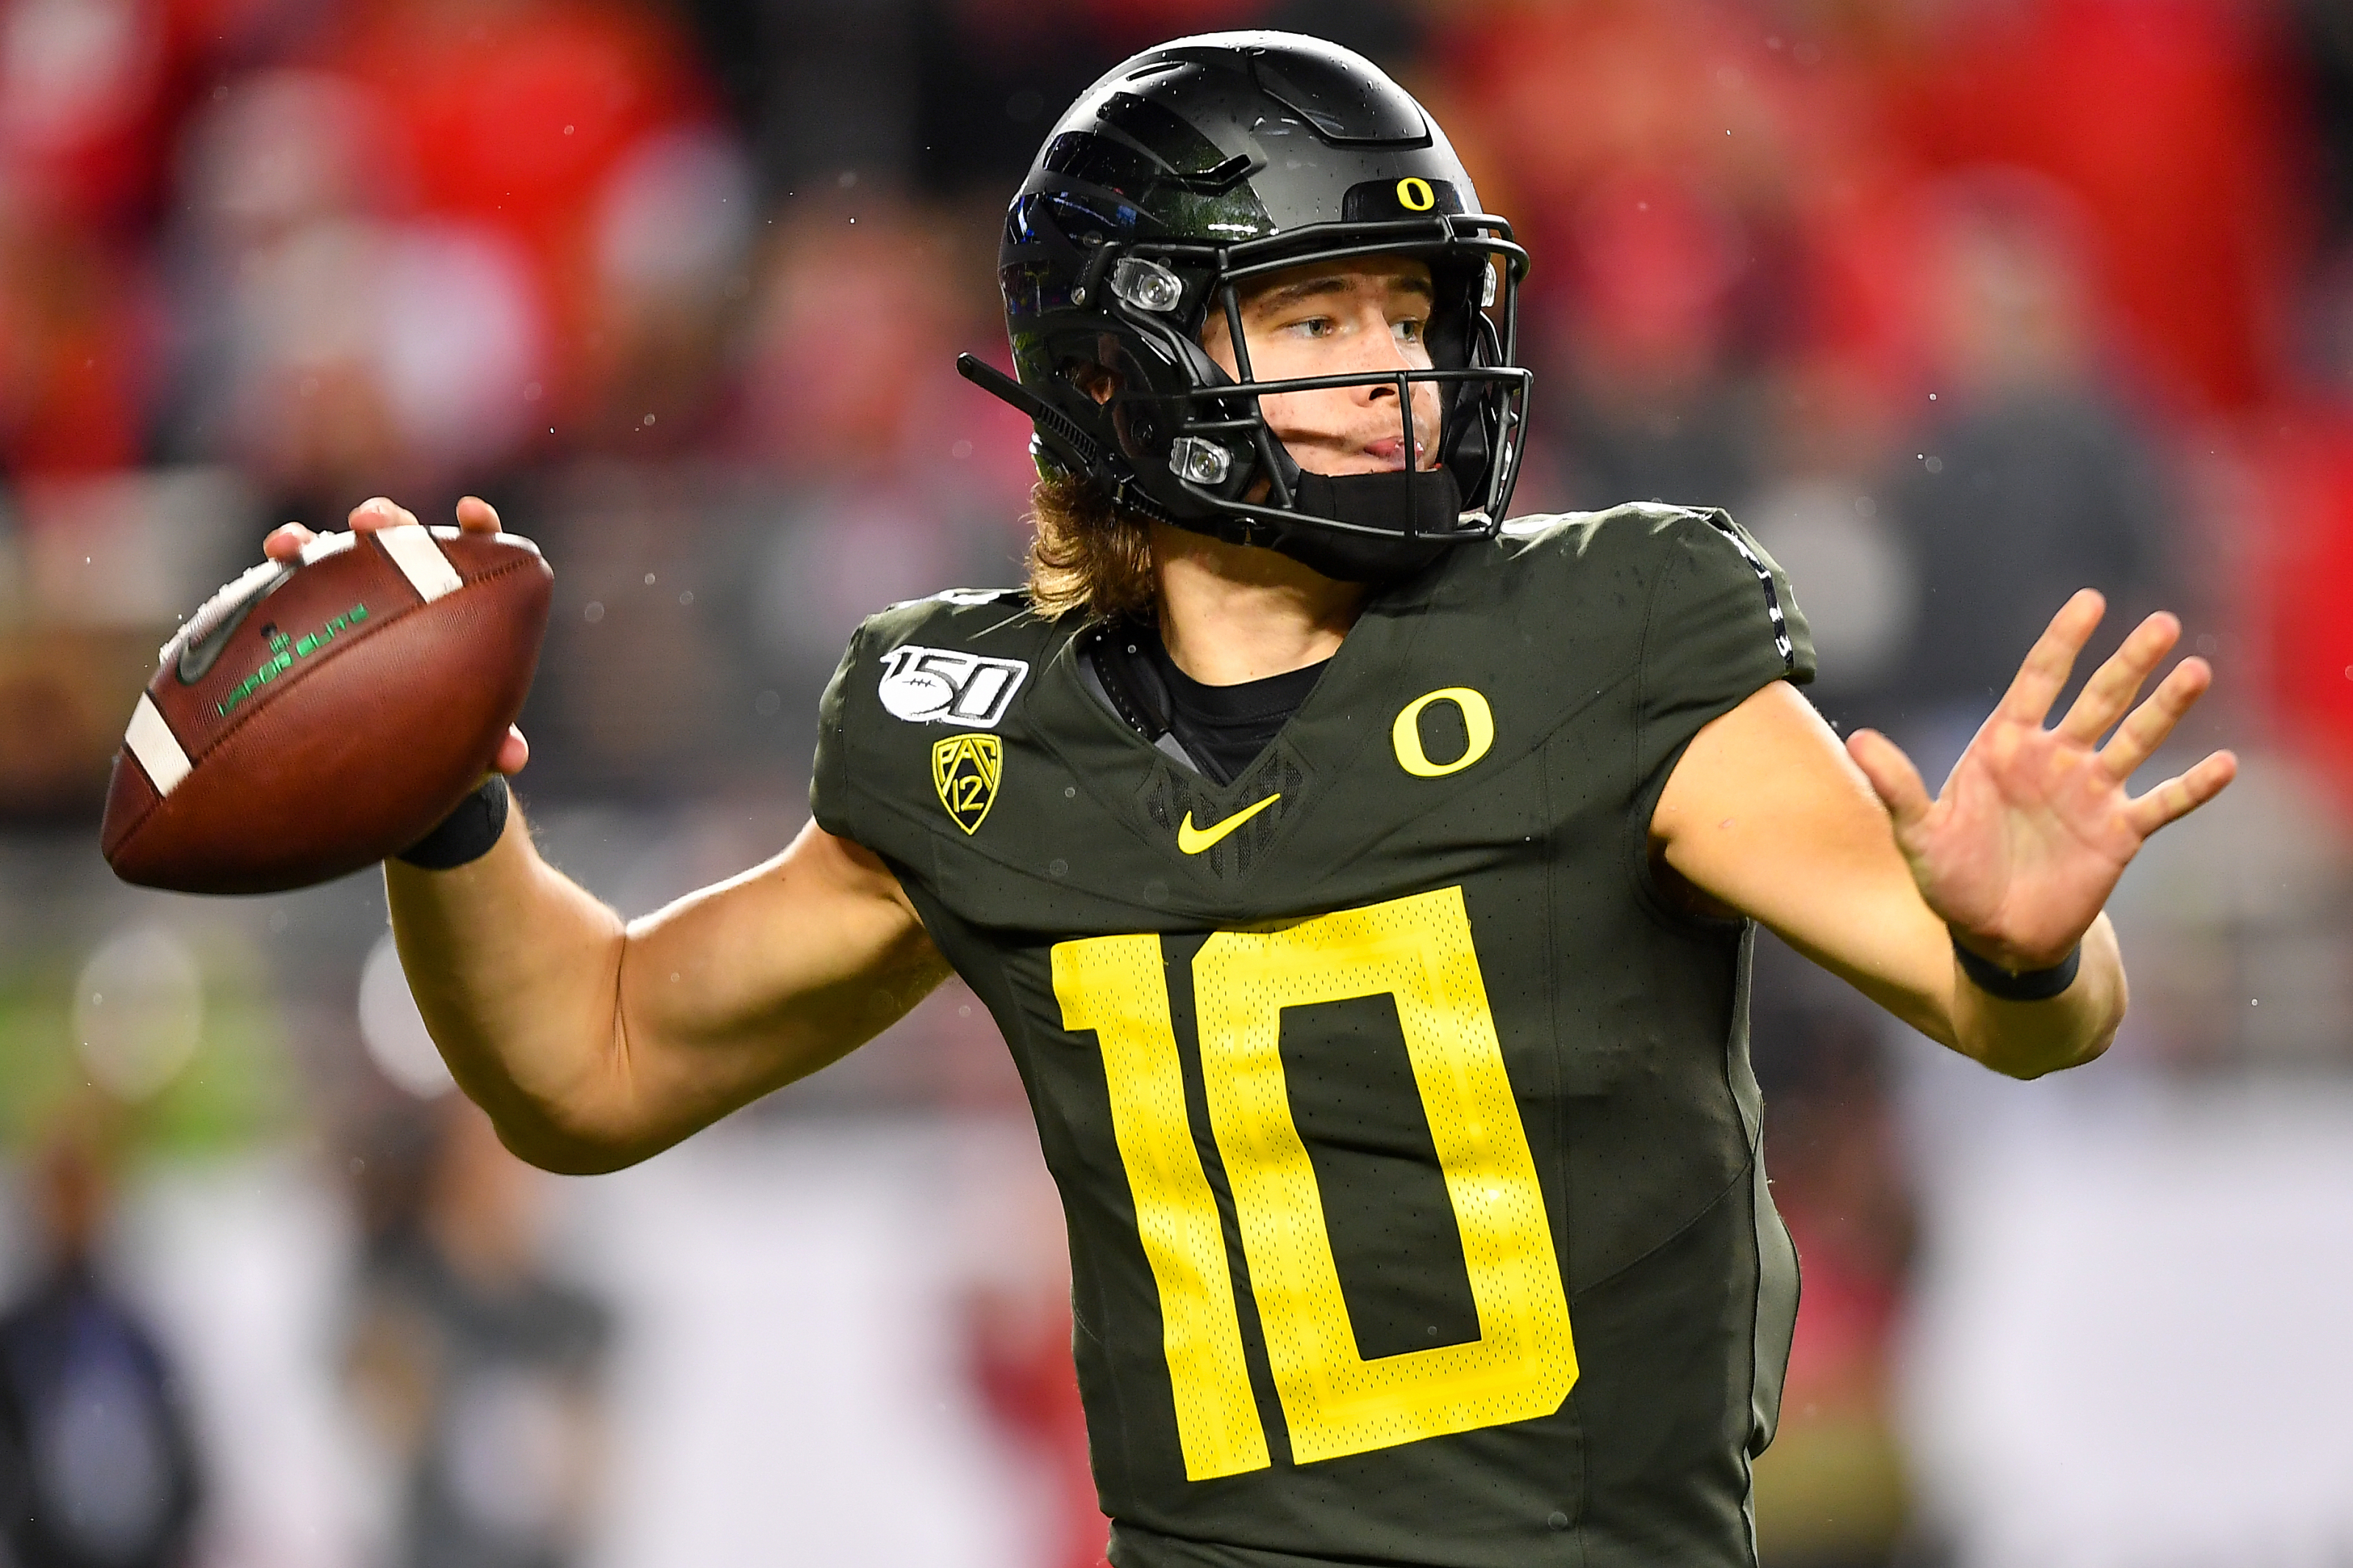 2020 NFL mock draft: Justin Herbert lands with the Chargers